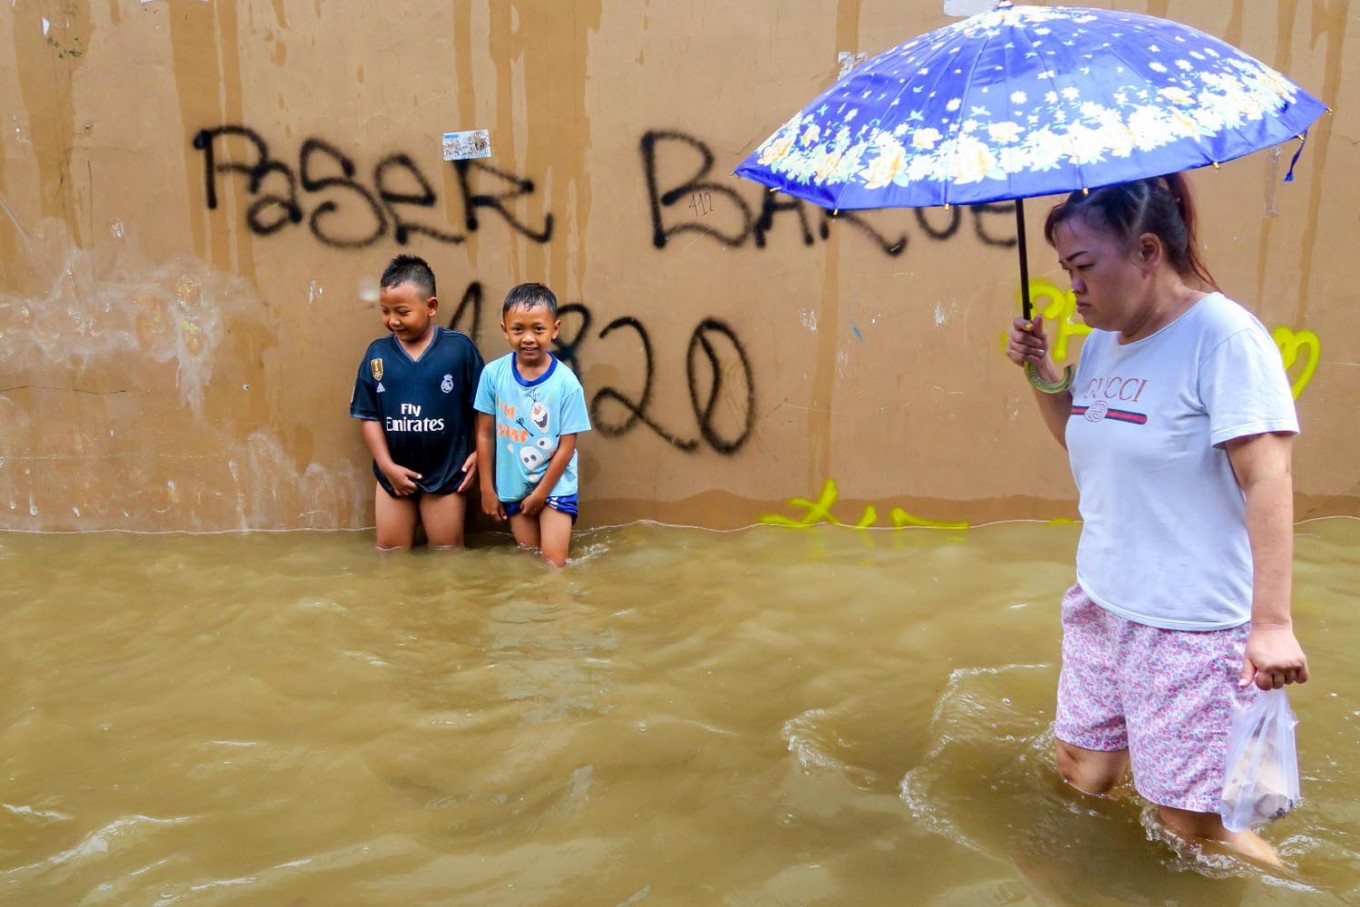 'Not ordinary rain': Worst rainfall in over decade causes massive floods in Jakarta